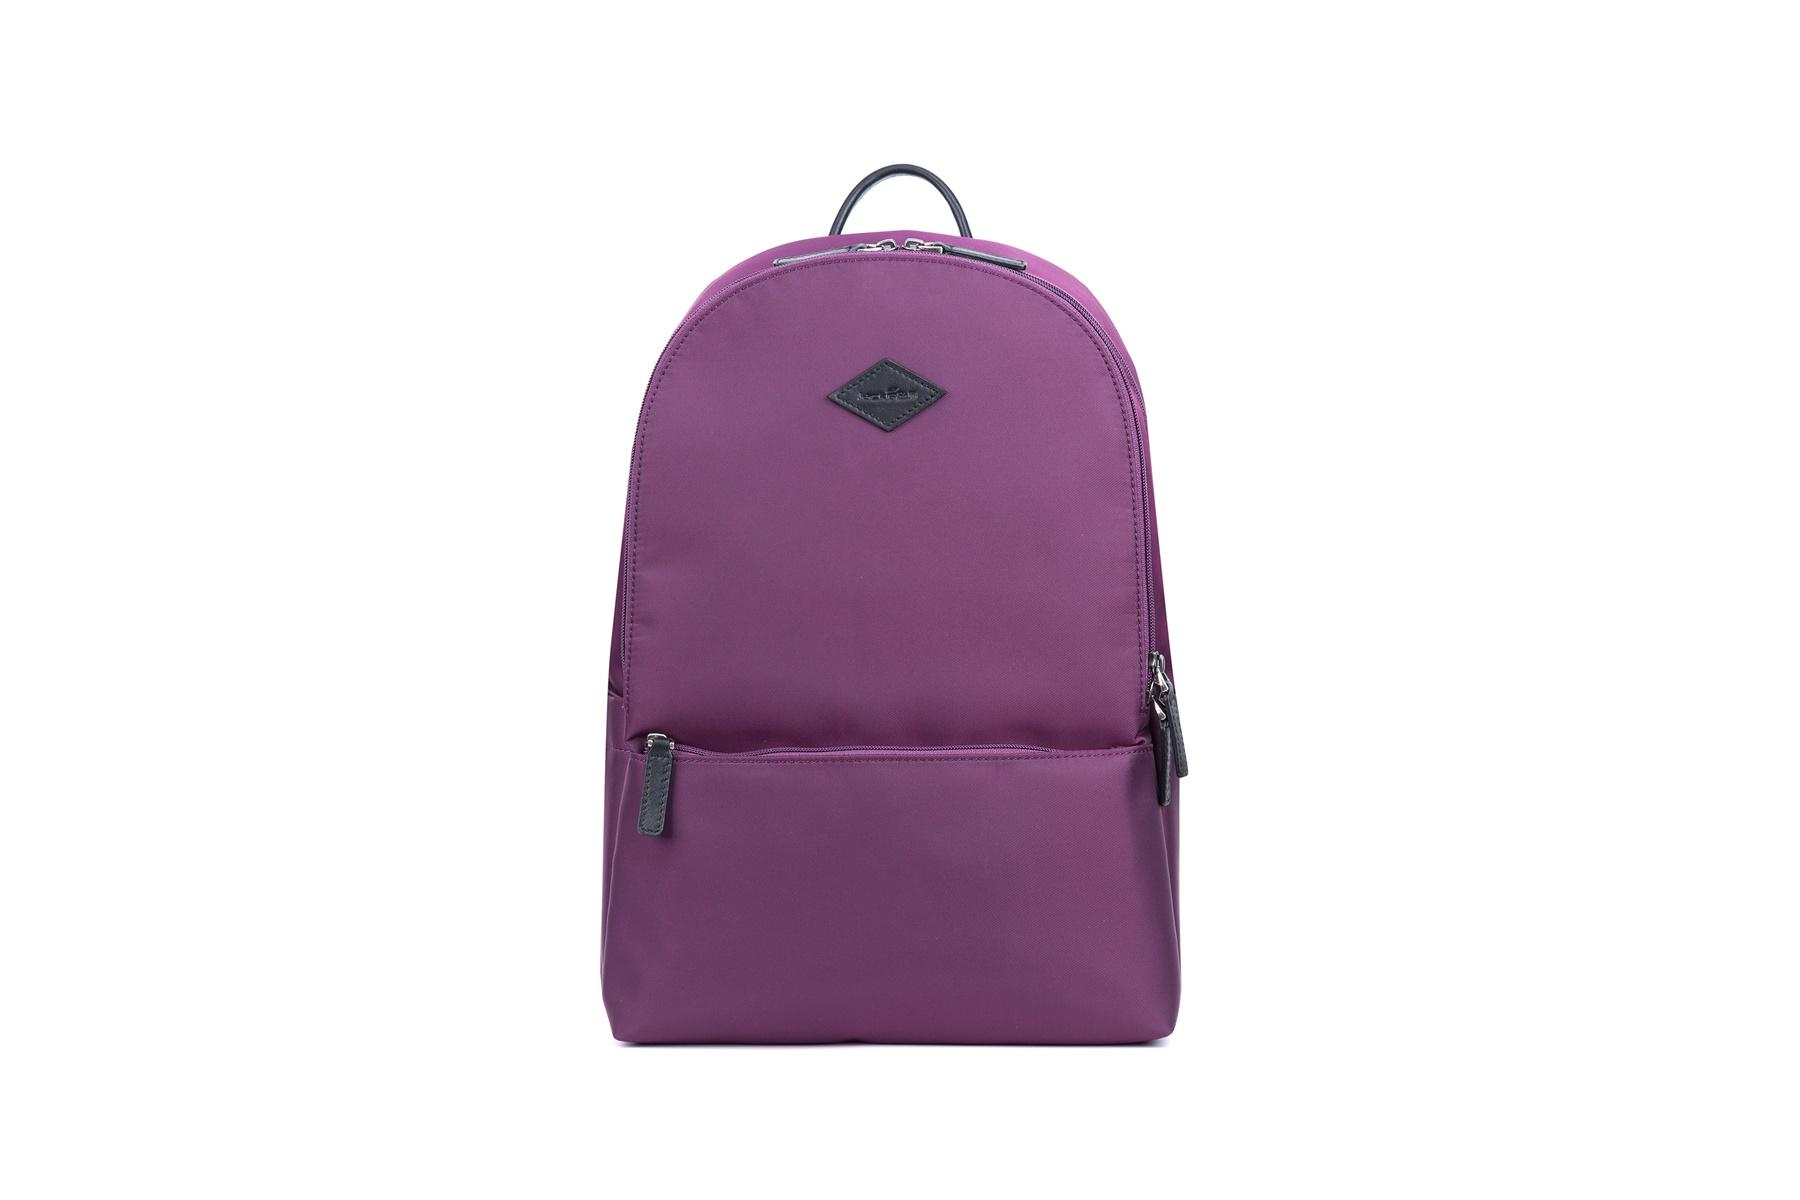 GF bags-Professional Stylish Backpacks Big Backpack Bags Manufacture